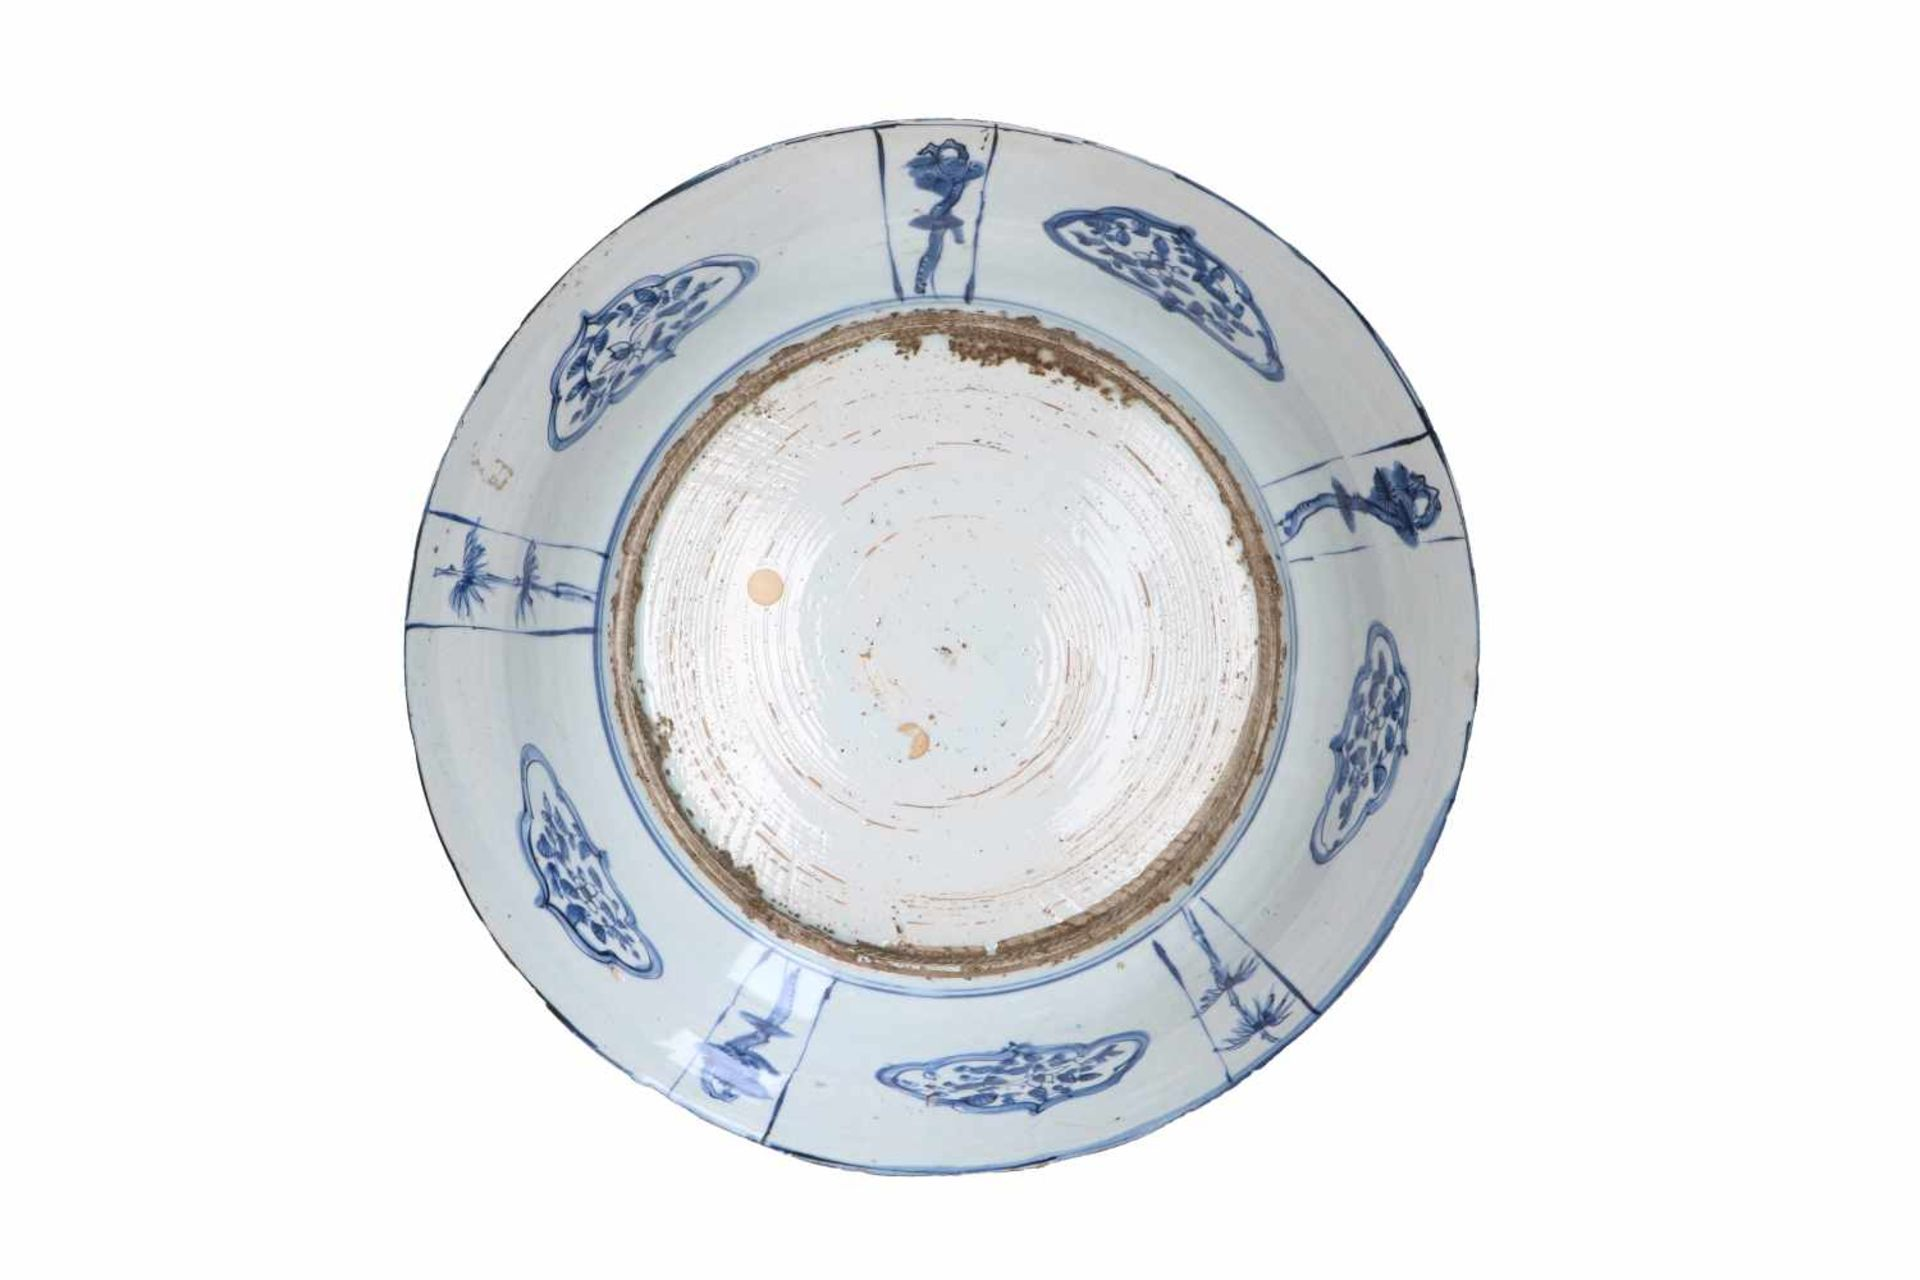 A blue and white 'kraak' porcelain deep charger, decorated with reserves depicting figures in - Bild 2 aus 3